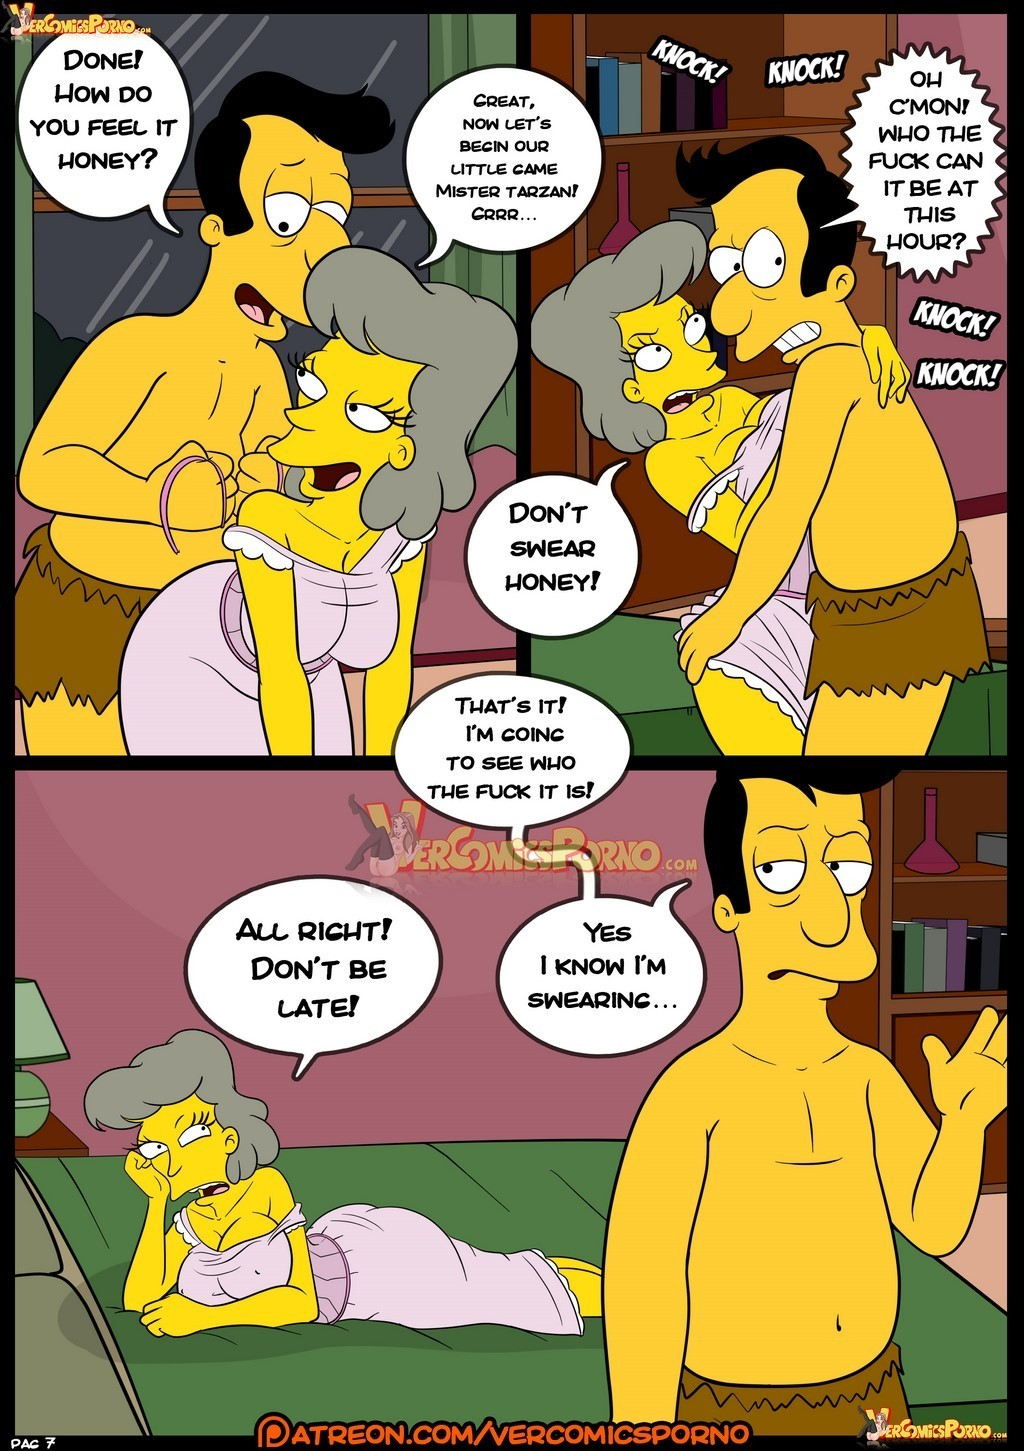 8 18 - The Simpsons. Part 8.